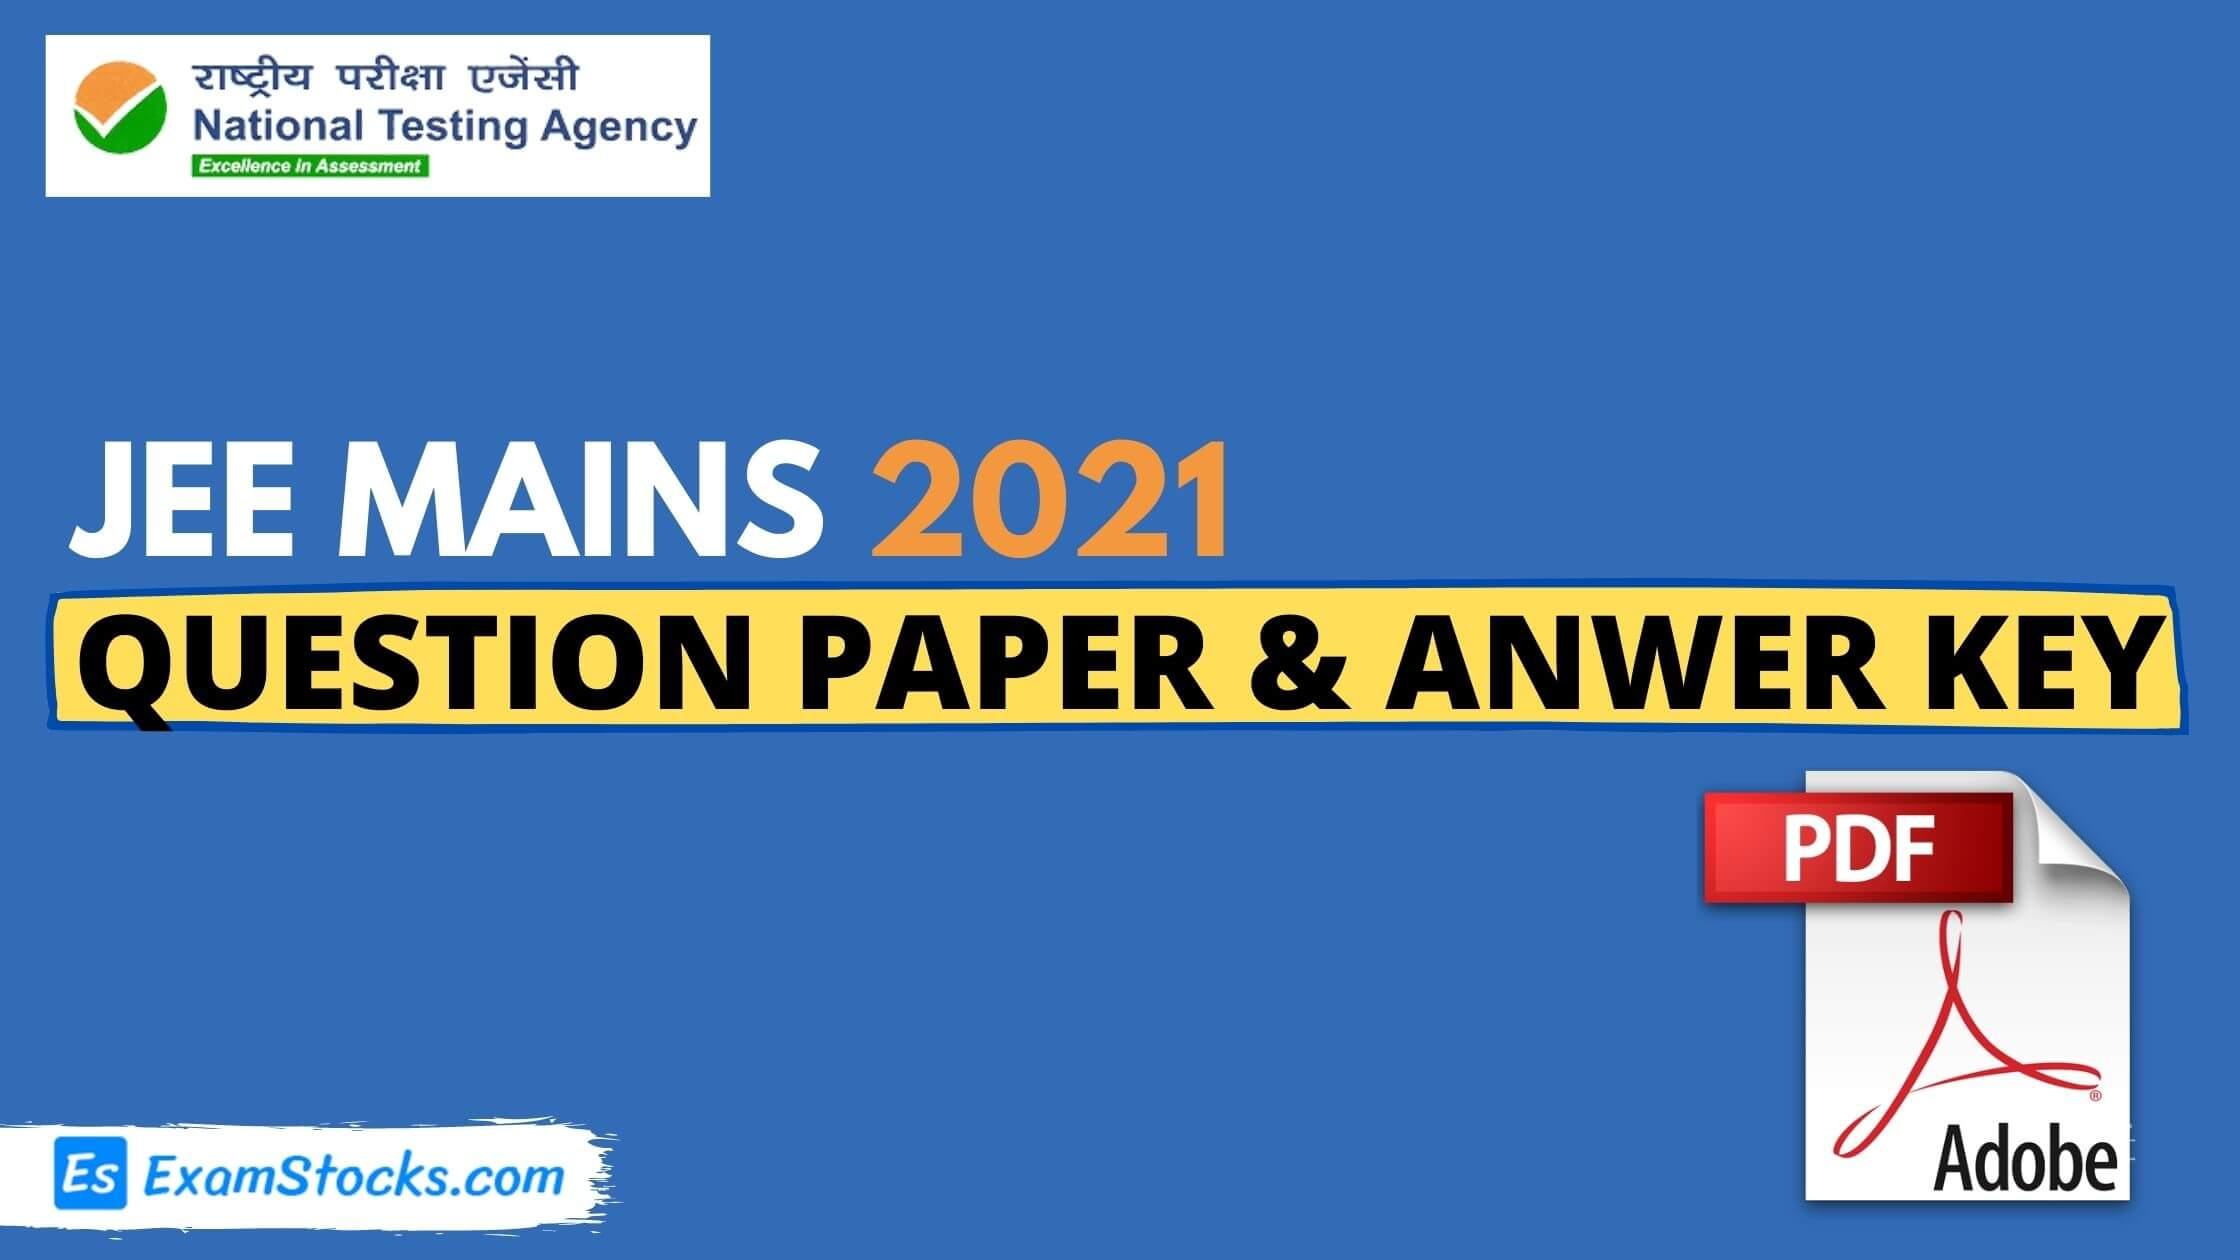 JEE Main 2021 Question Paper PDF & Answer Key Of All Shifts